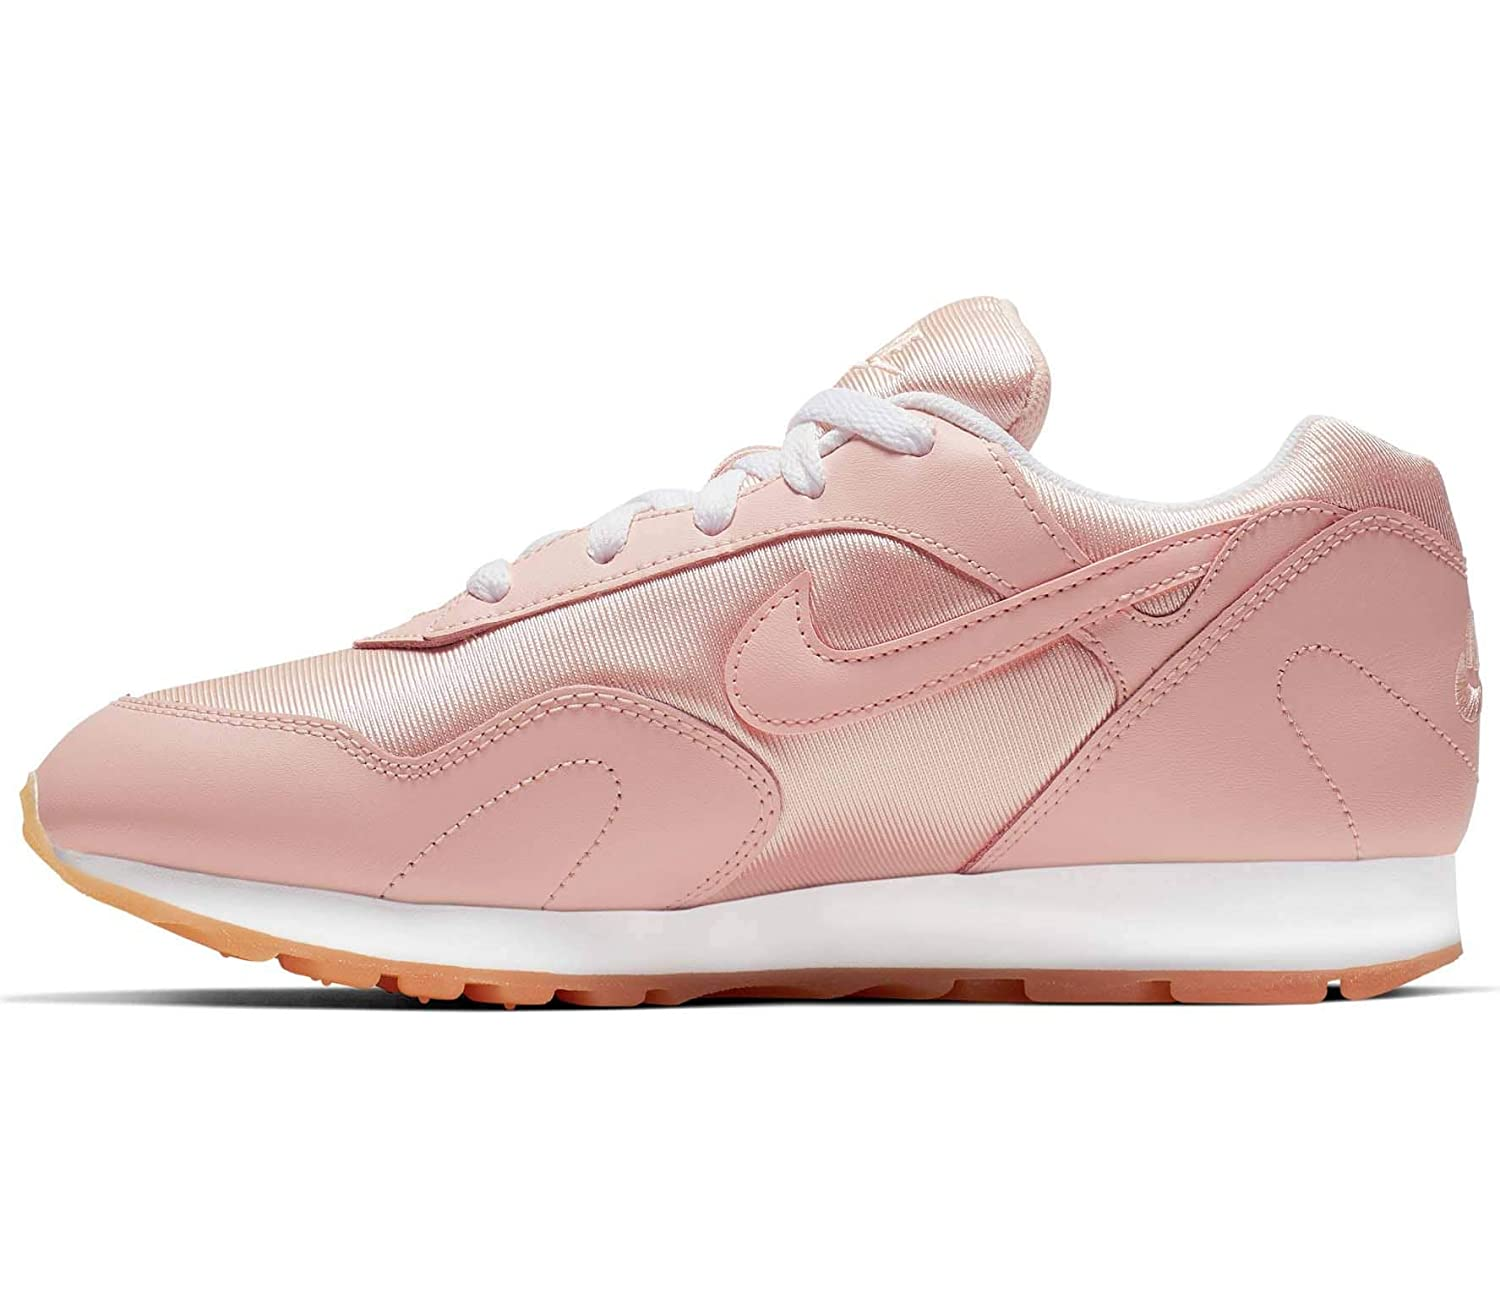 MultiCouleure (Washed Coral Washed Coral Fuel Orange 000) 39 EU Nike W Outburst, Chaussures d'Athlétisme Femme